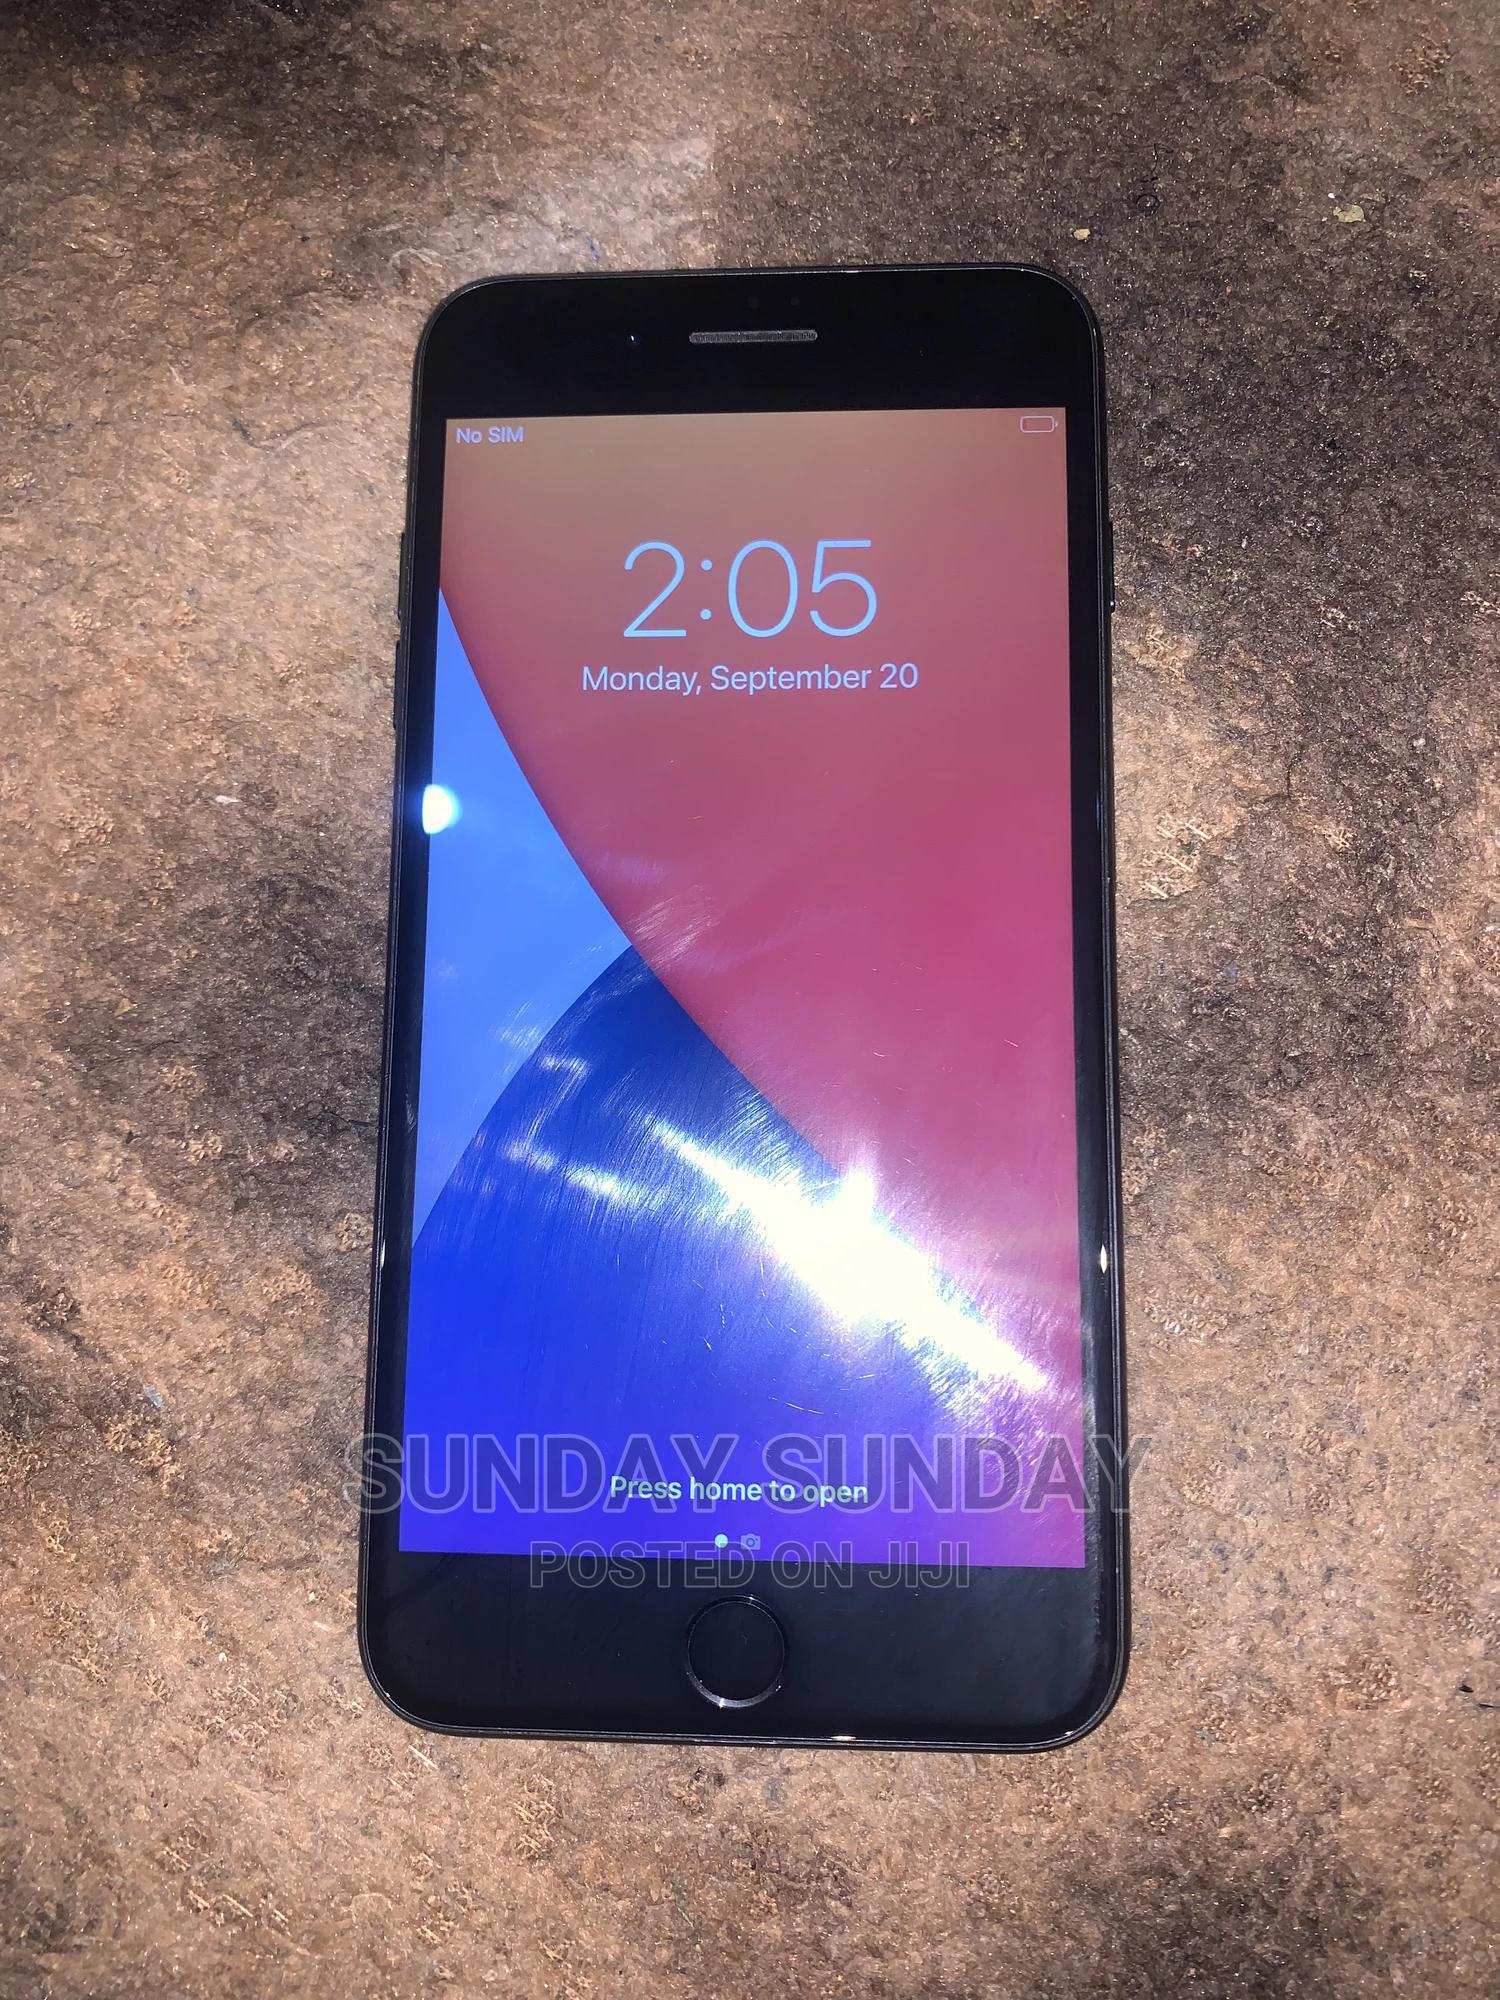 Apple iPhone 7 Plus 128 GB Black | Mobile Phones for sale in Ogbomosho North, Oyo State, Nigeria